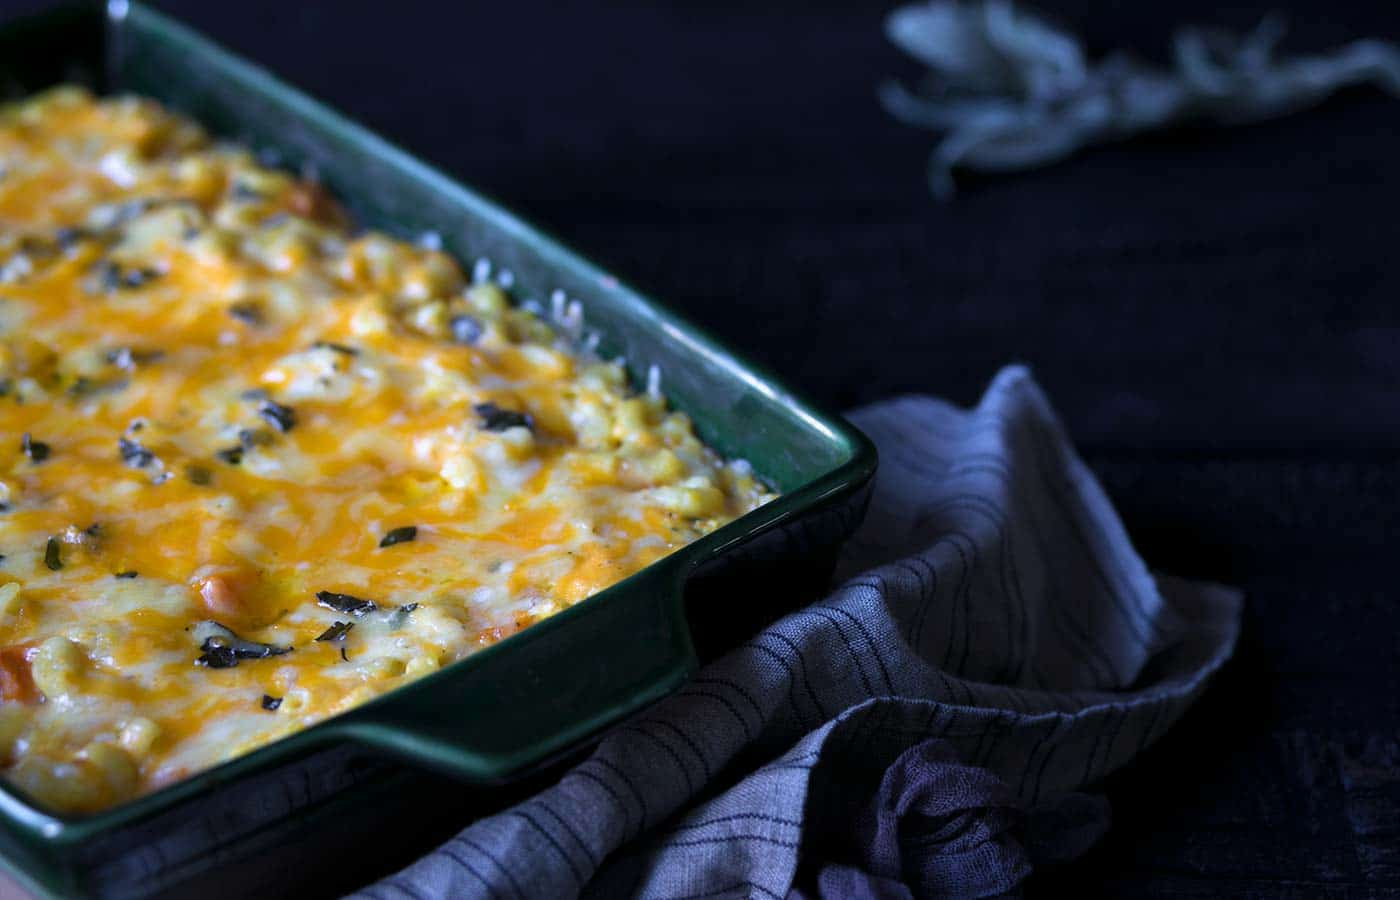 This Baked Butternut Squash Macaroni and Cheese is perfect for holiday parties and any cozy winter meal! Get the recipe from Savory Simple.